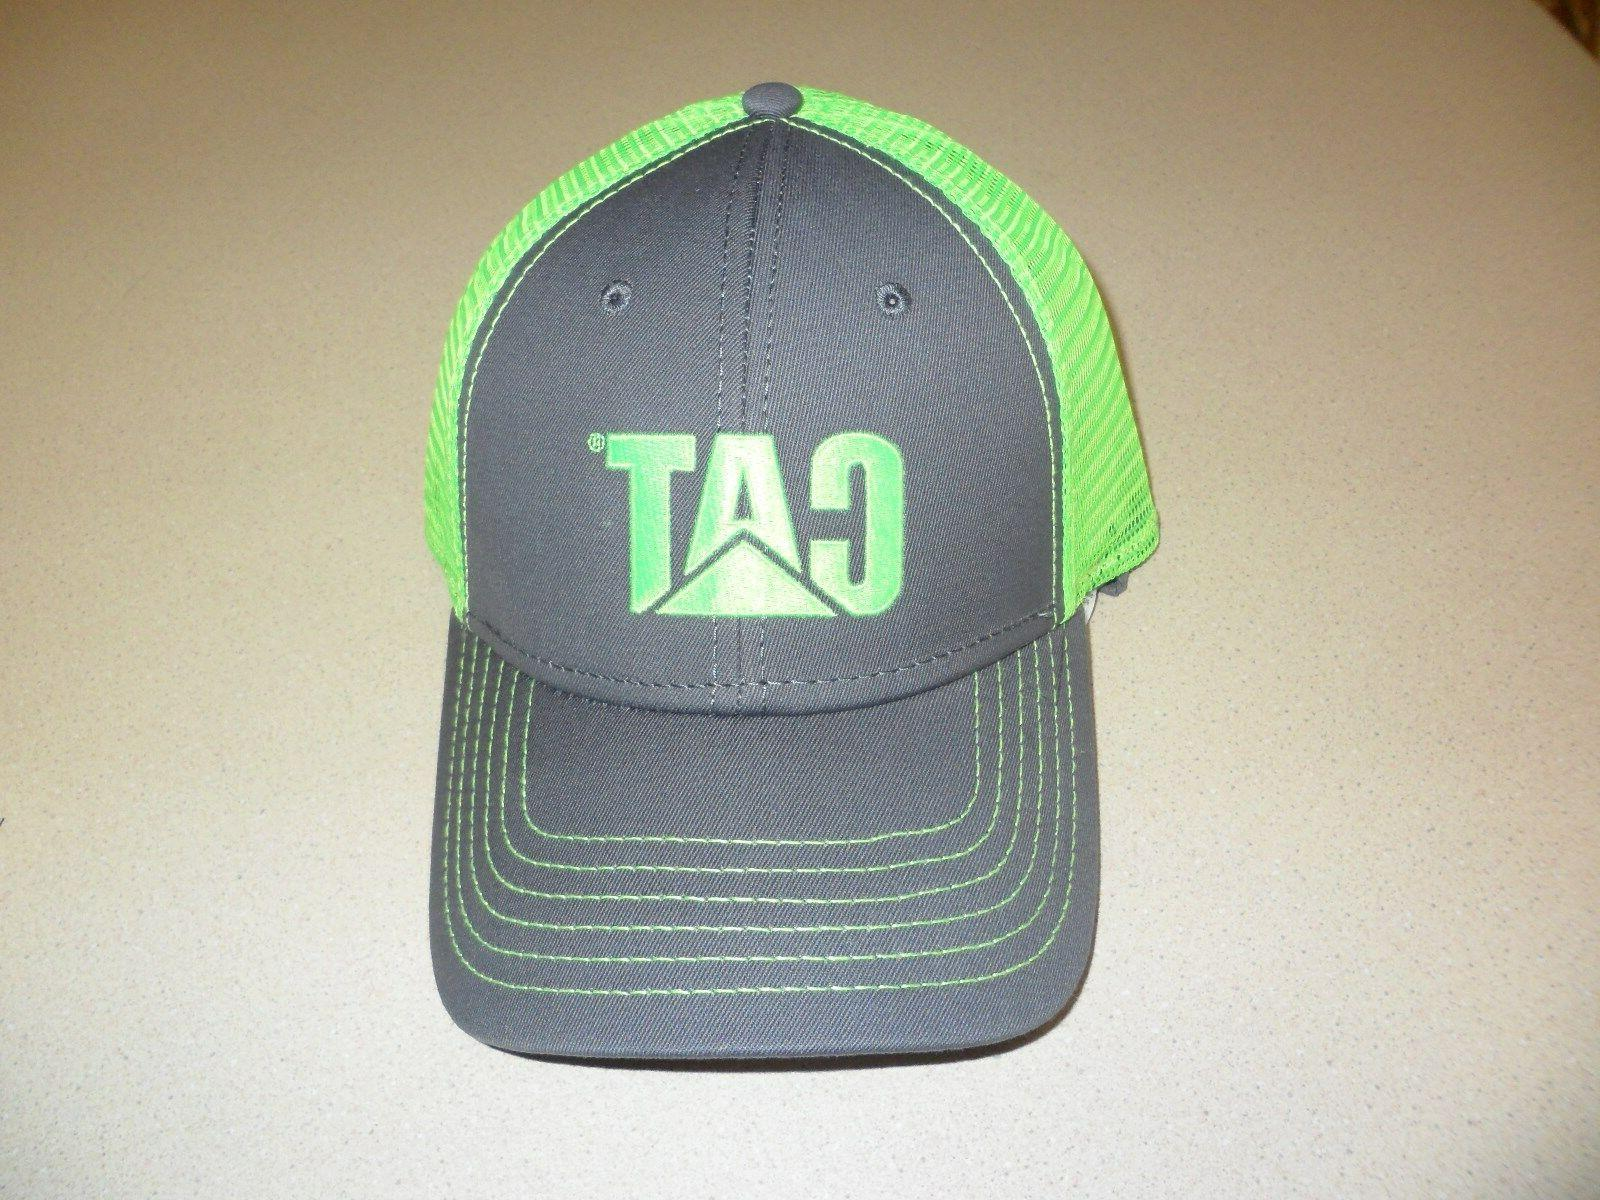 Caterpillar Charcoal Hat Neon Green CAT logo & mesh Trucker